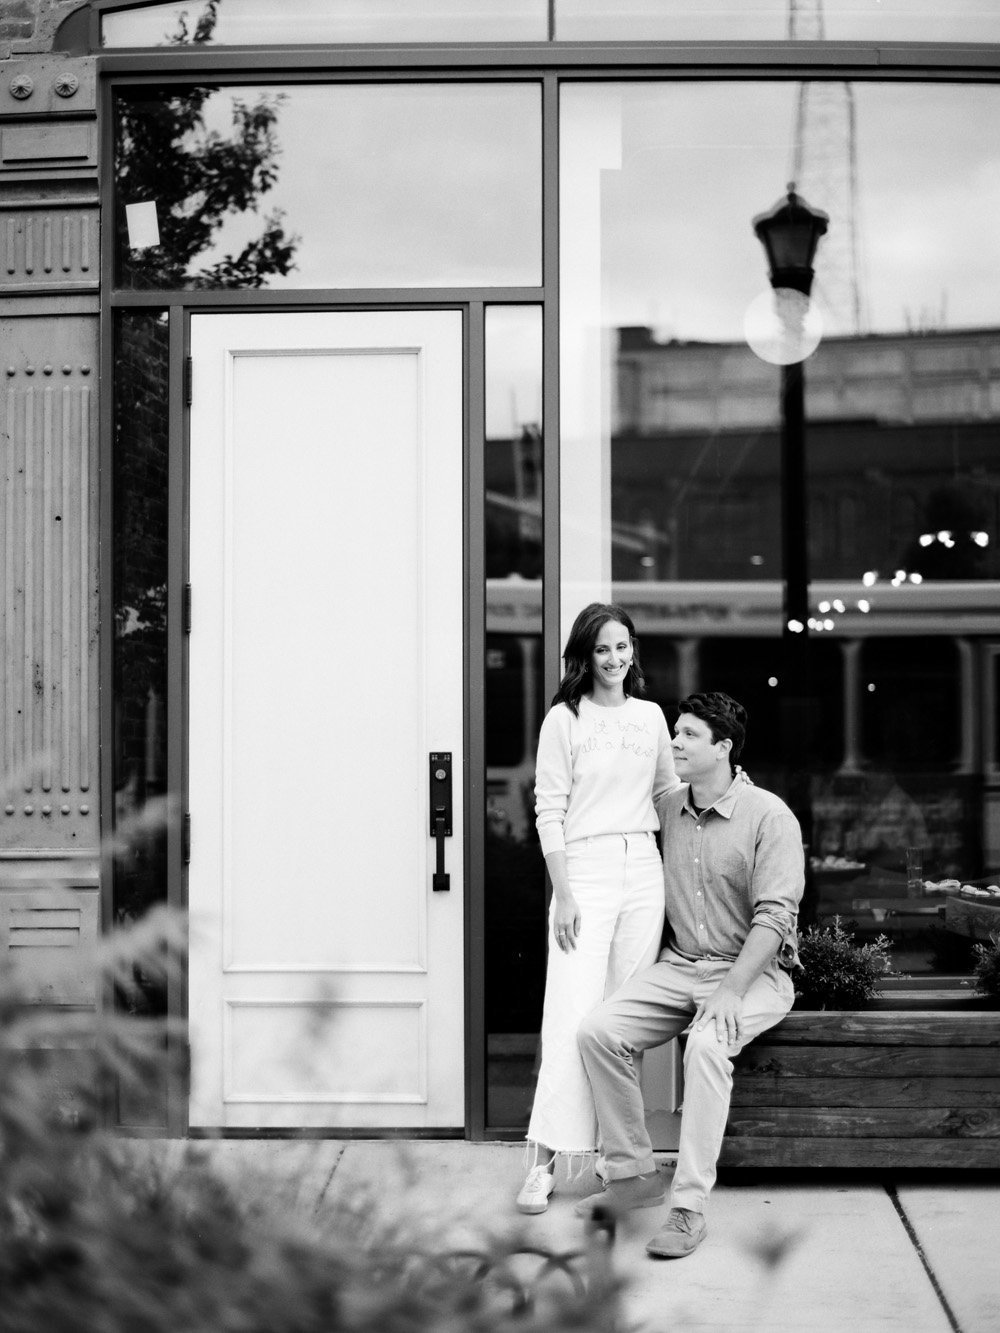 mary-dougherty-engaged-new-york-wedding-photographer-buffalo03